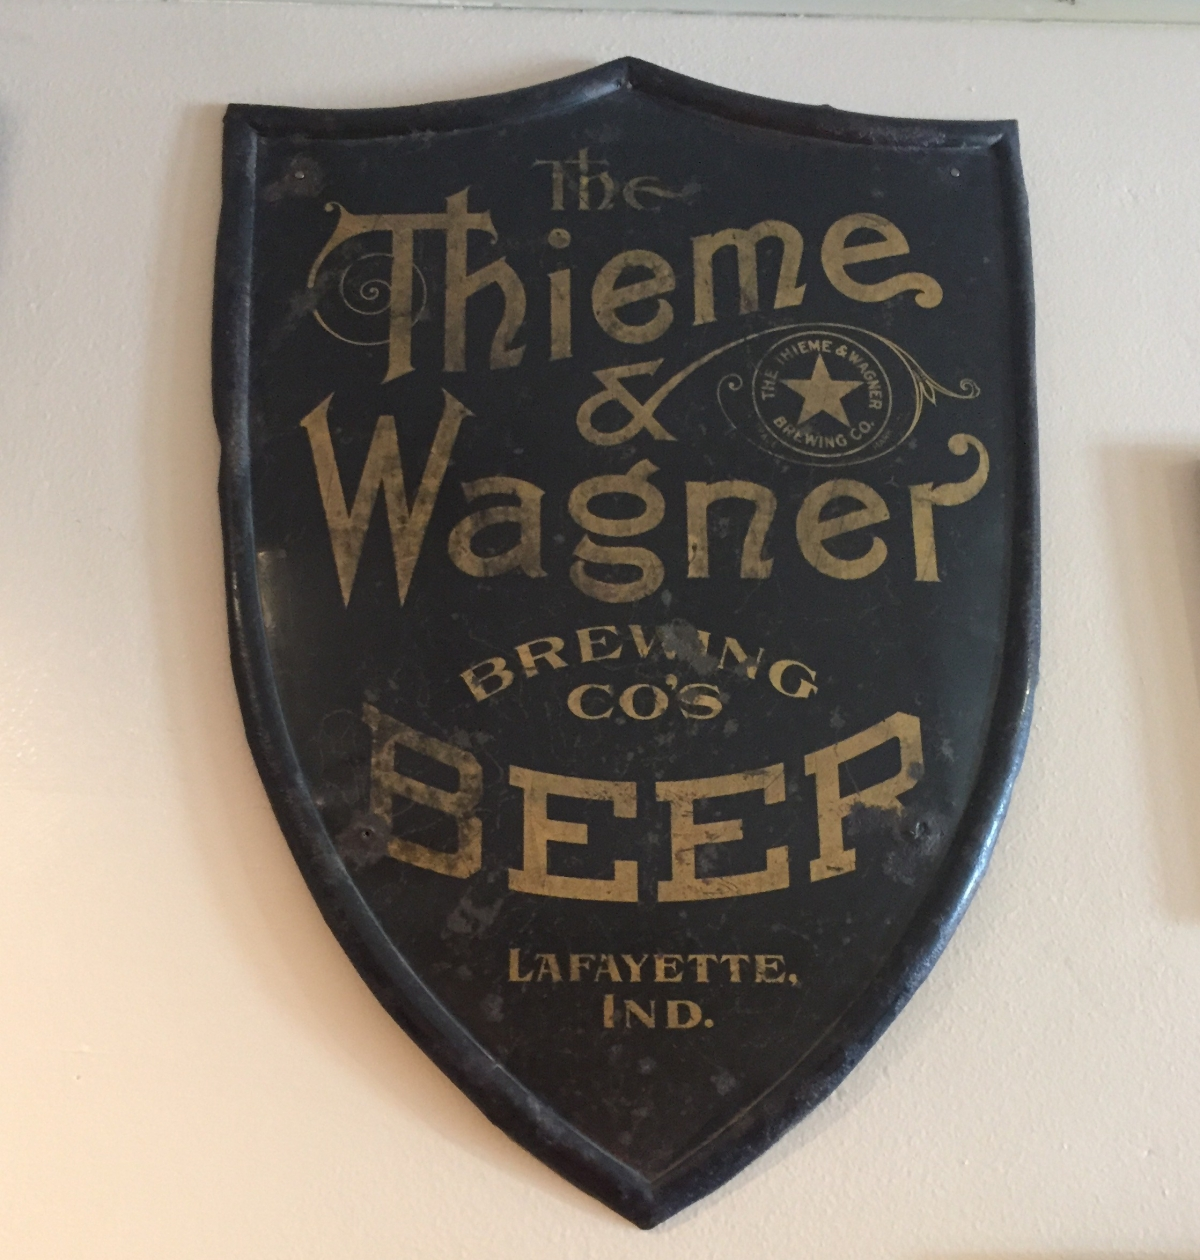 Brewing Again at Thieme & Wagner